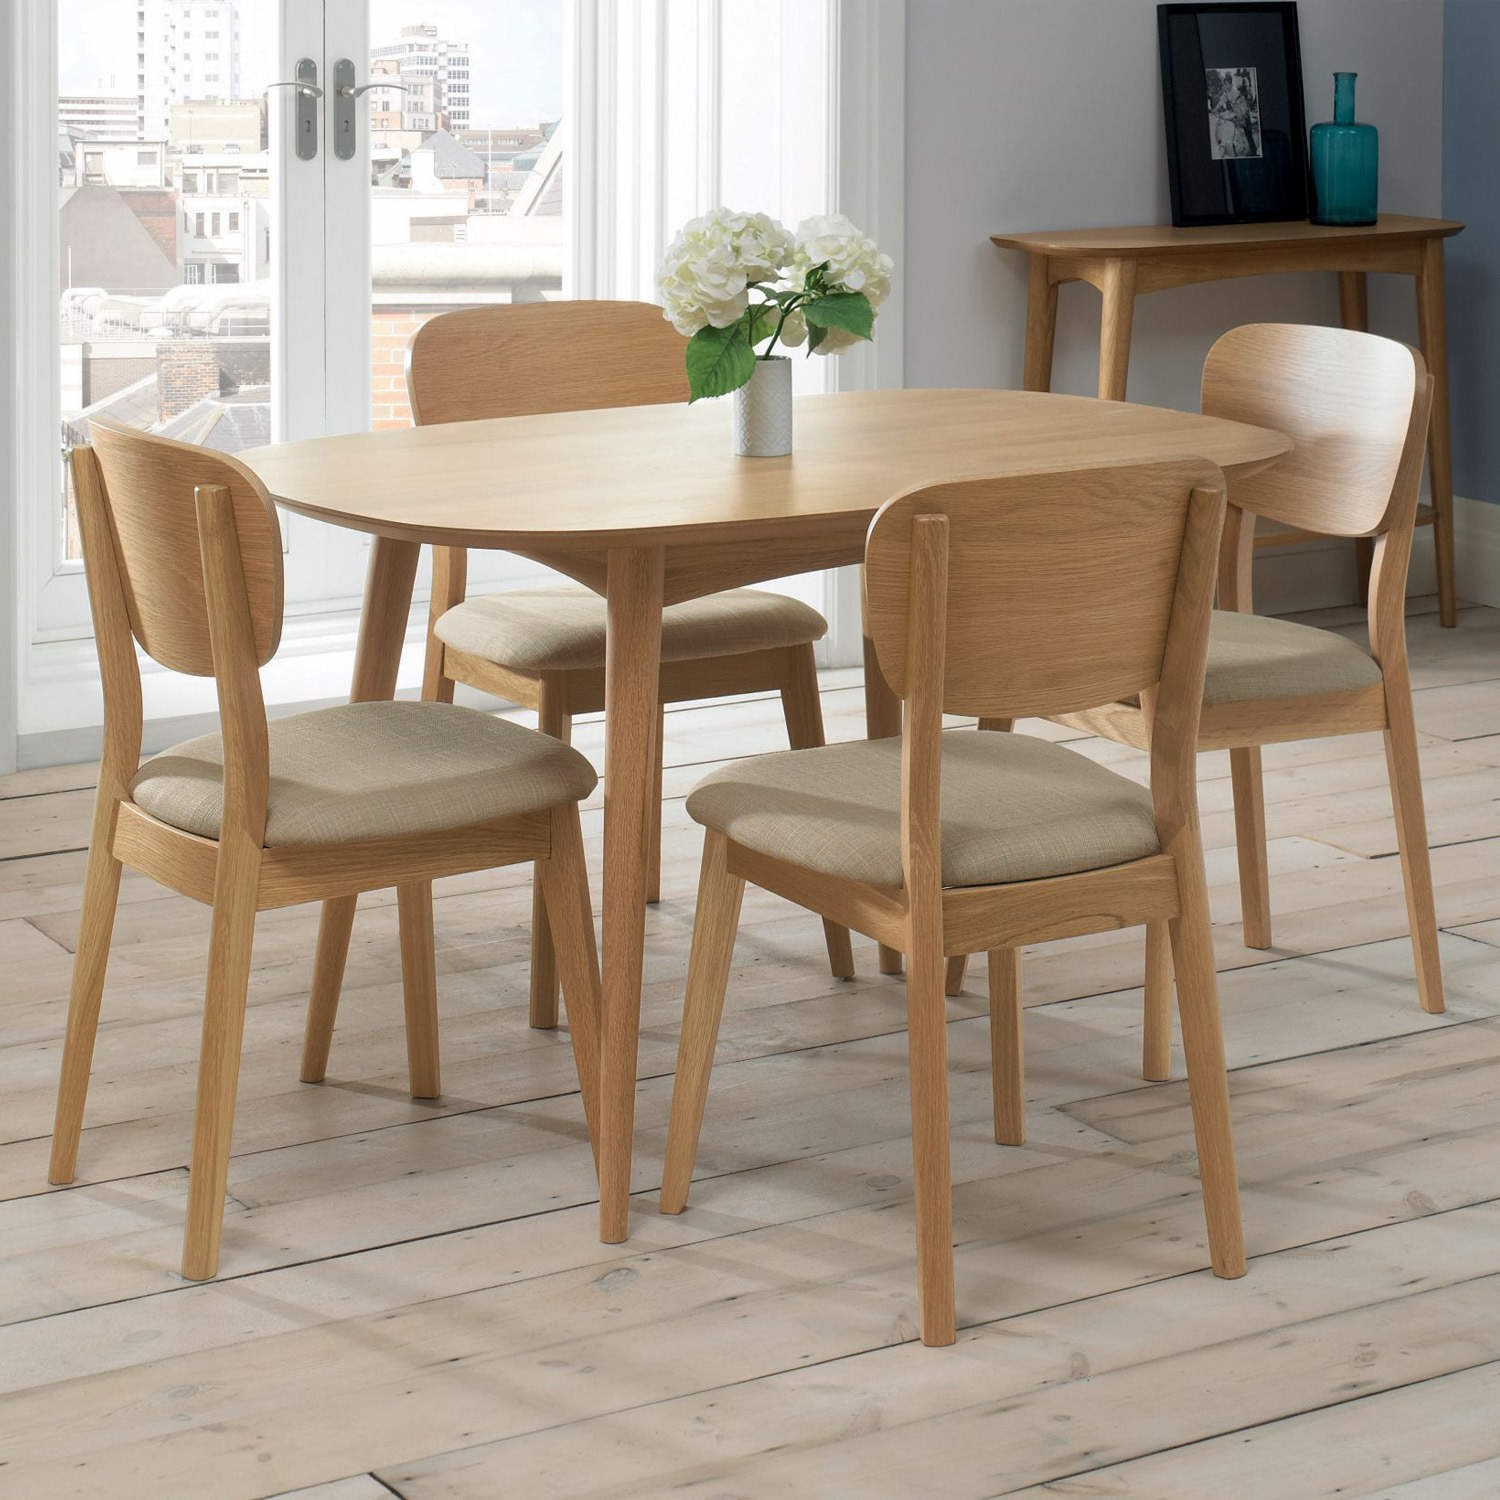 bentley designs pair of oslo oak dining chairs